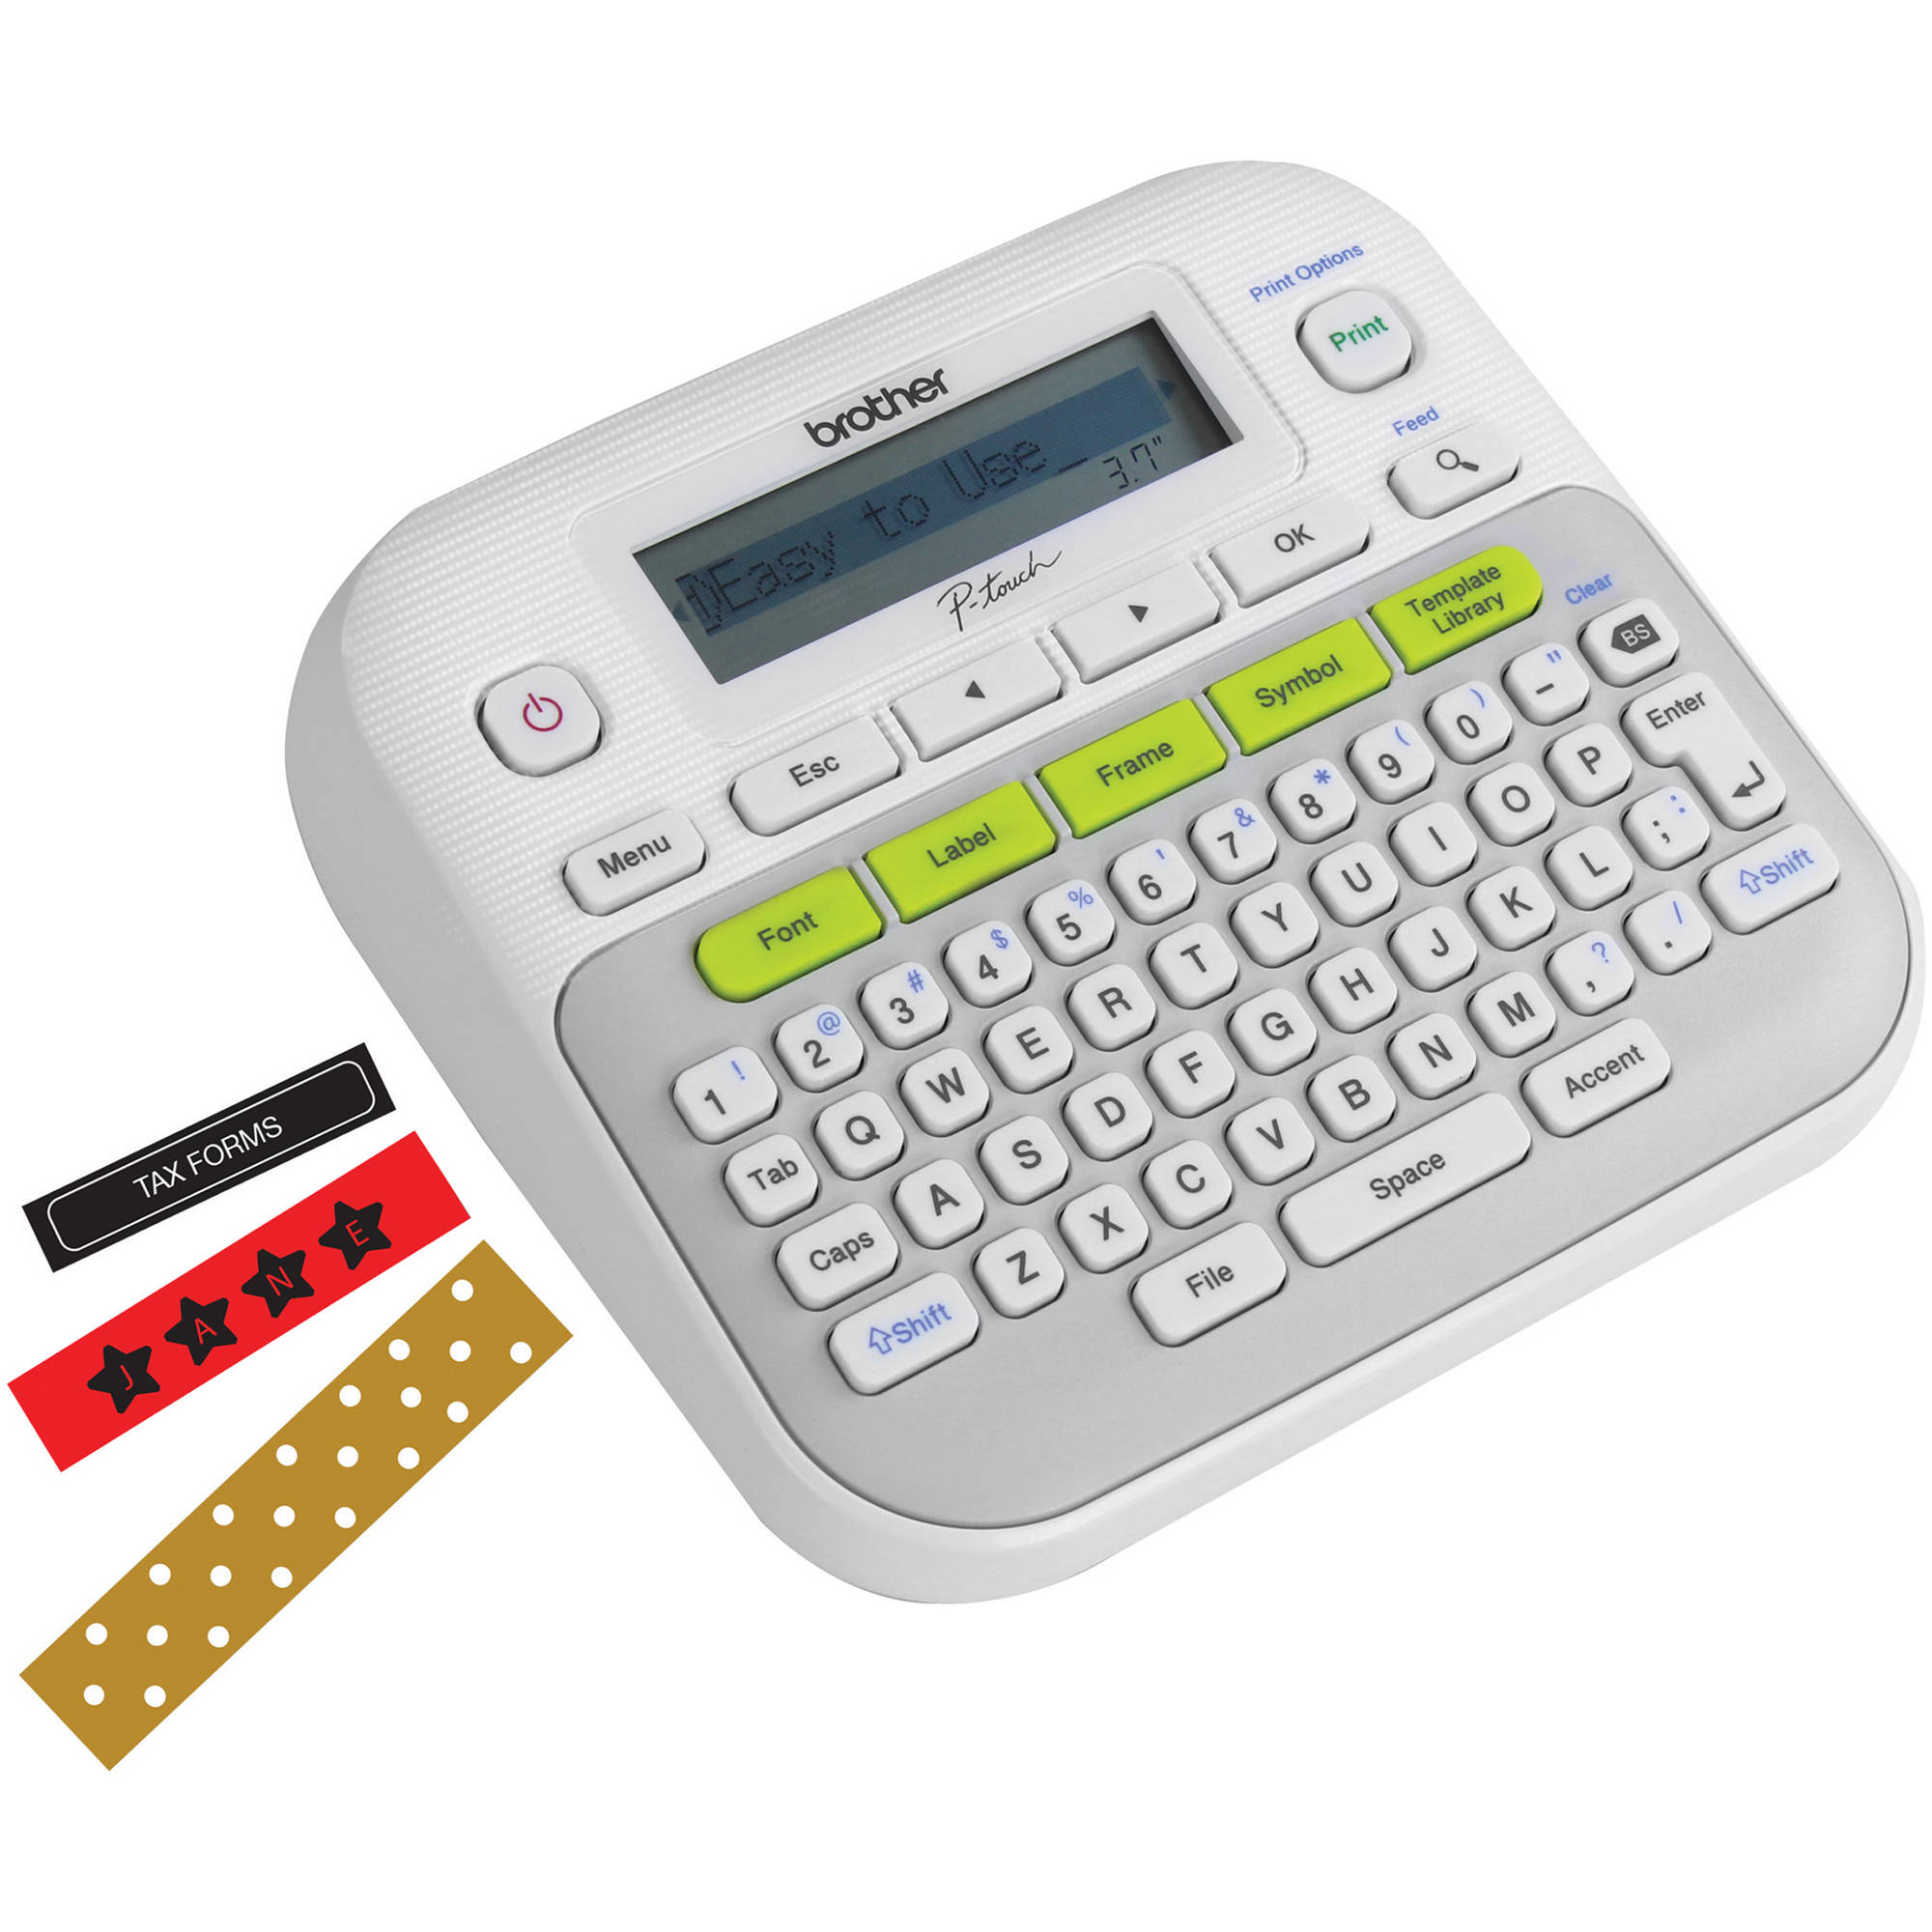 Brother P Touch Pt D210 Label Maker Just 9 99 Reg 39 99: Brother PT-D210 Portable Label Maker PT-D210 B&H Photo Video